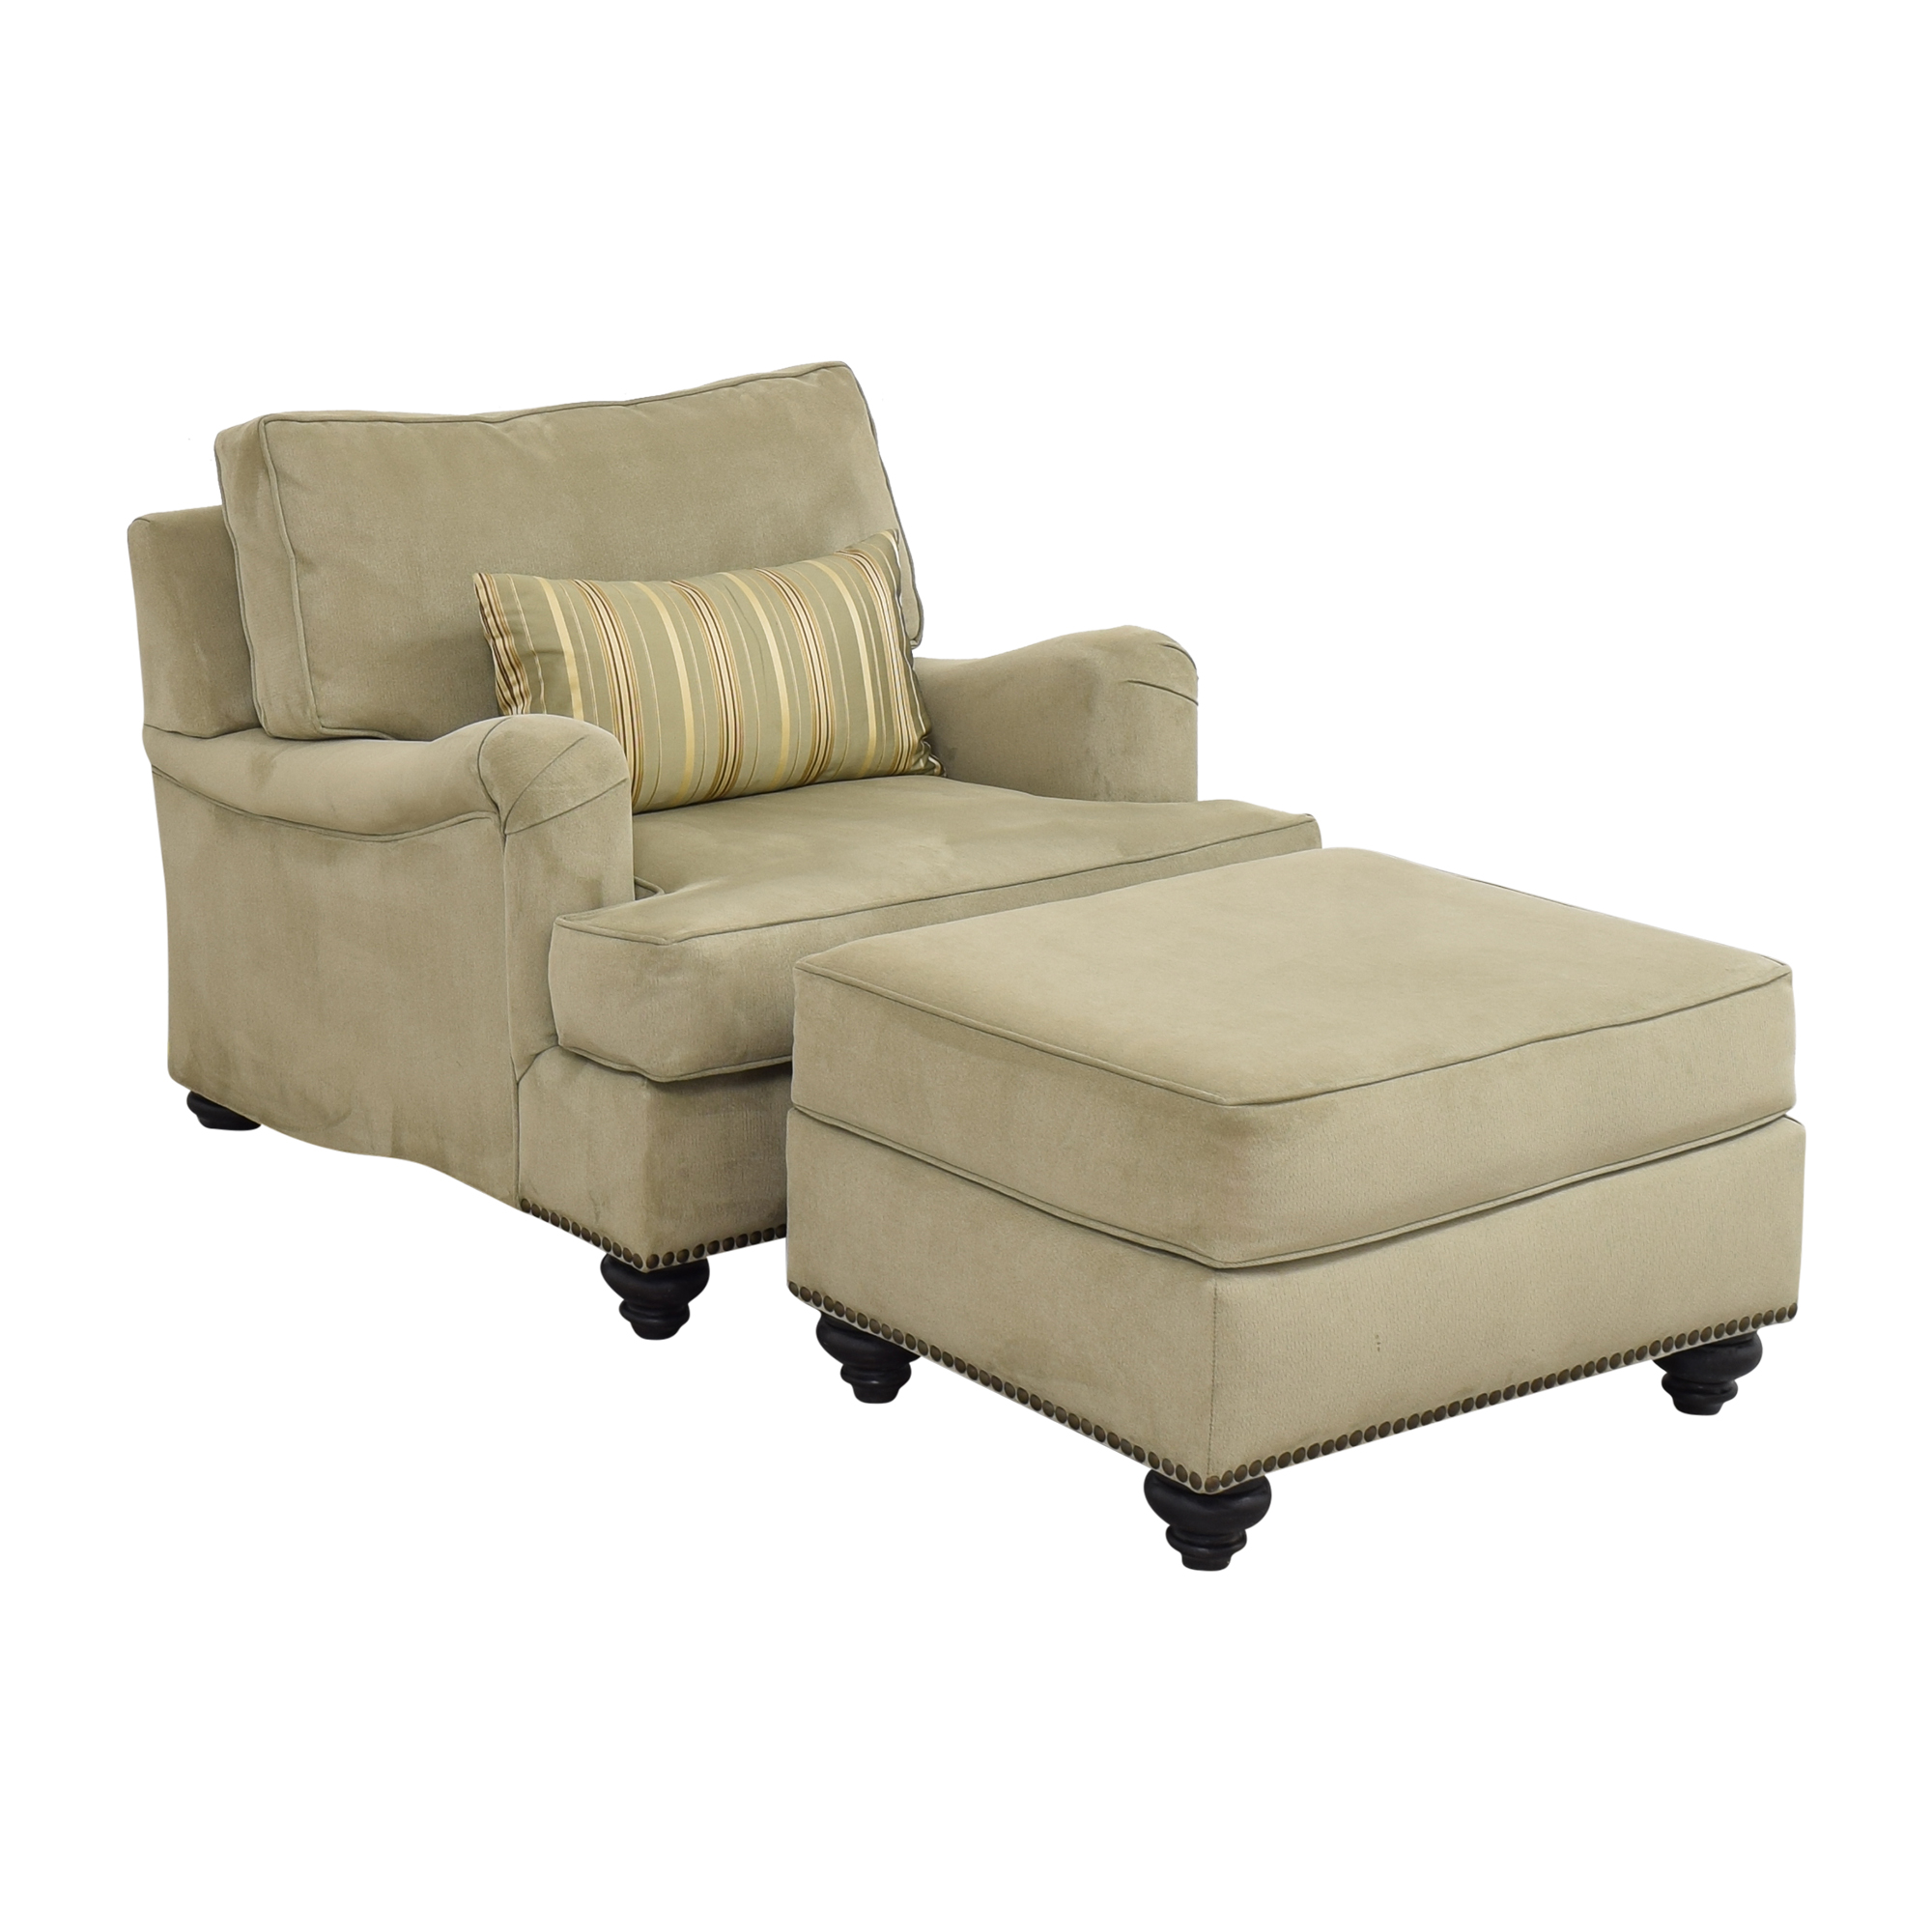 Nailhead Accent Chair with Ottoman dimensions